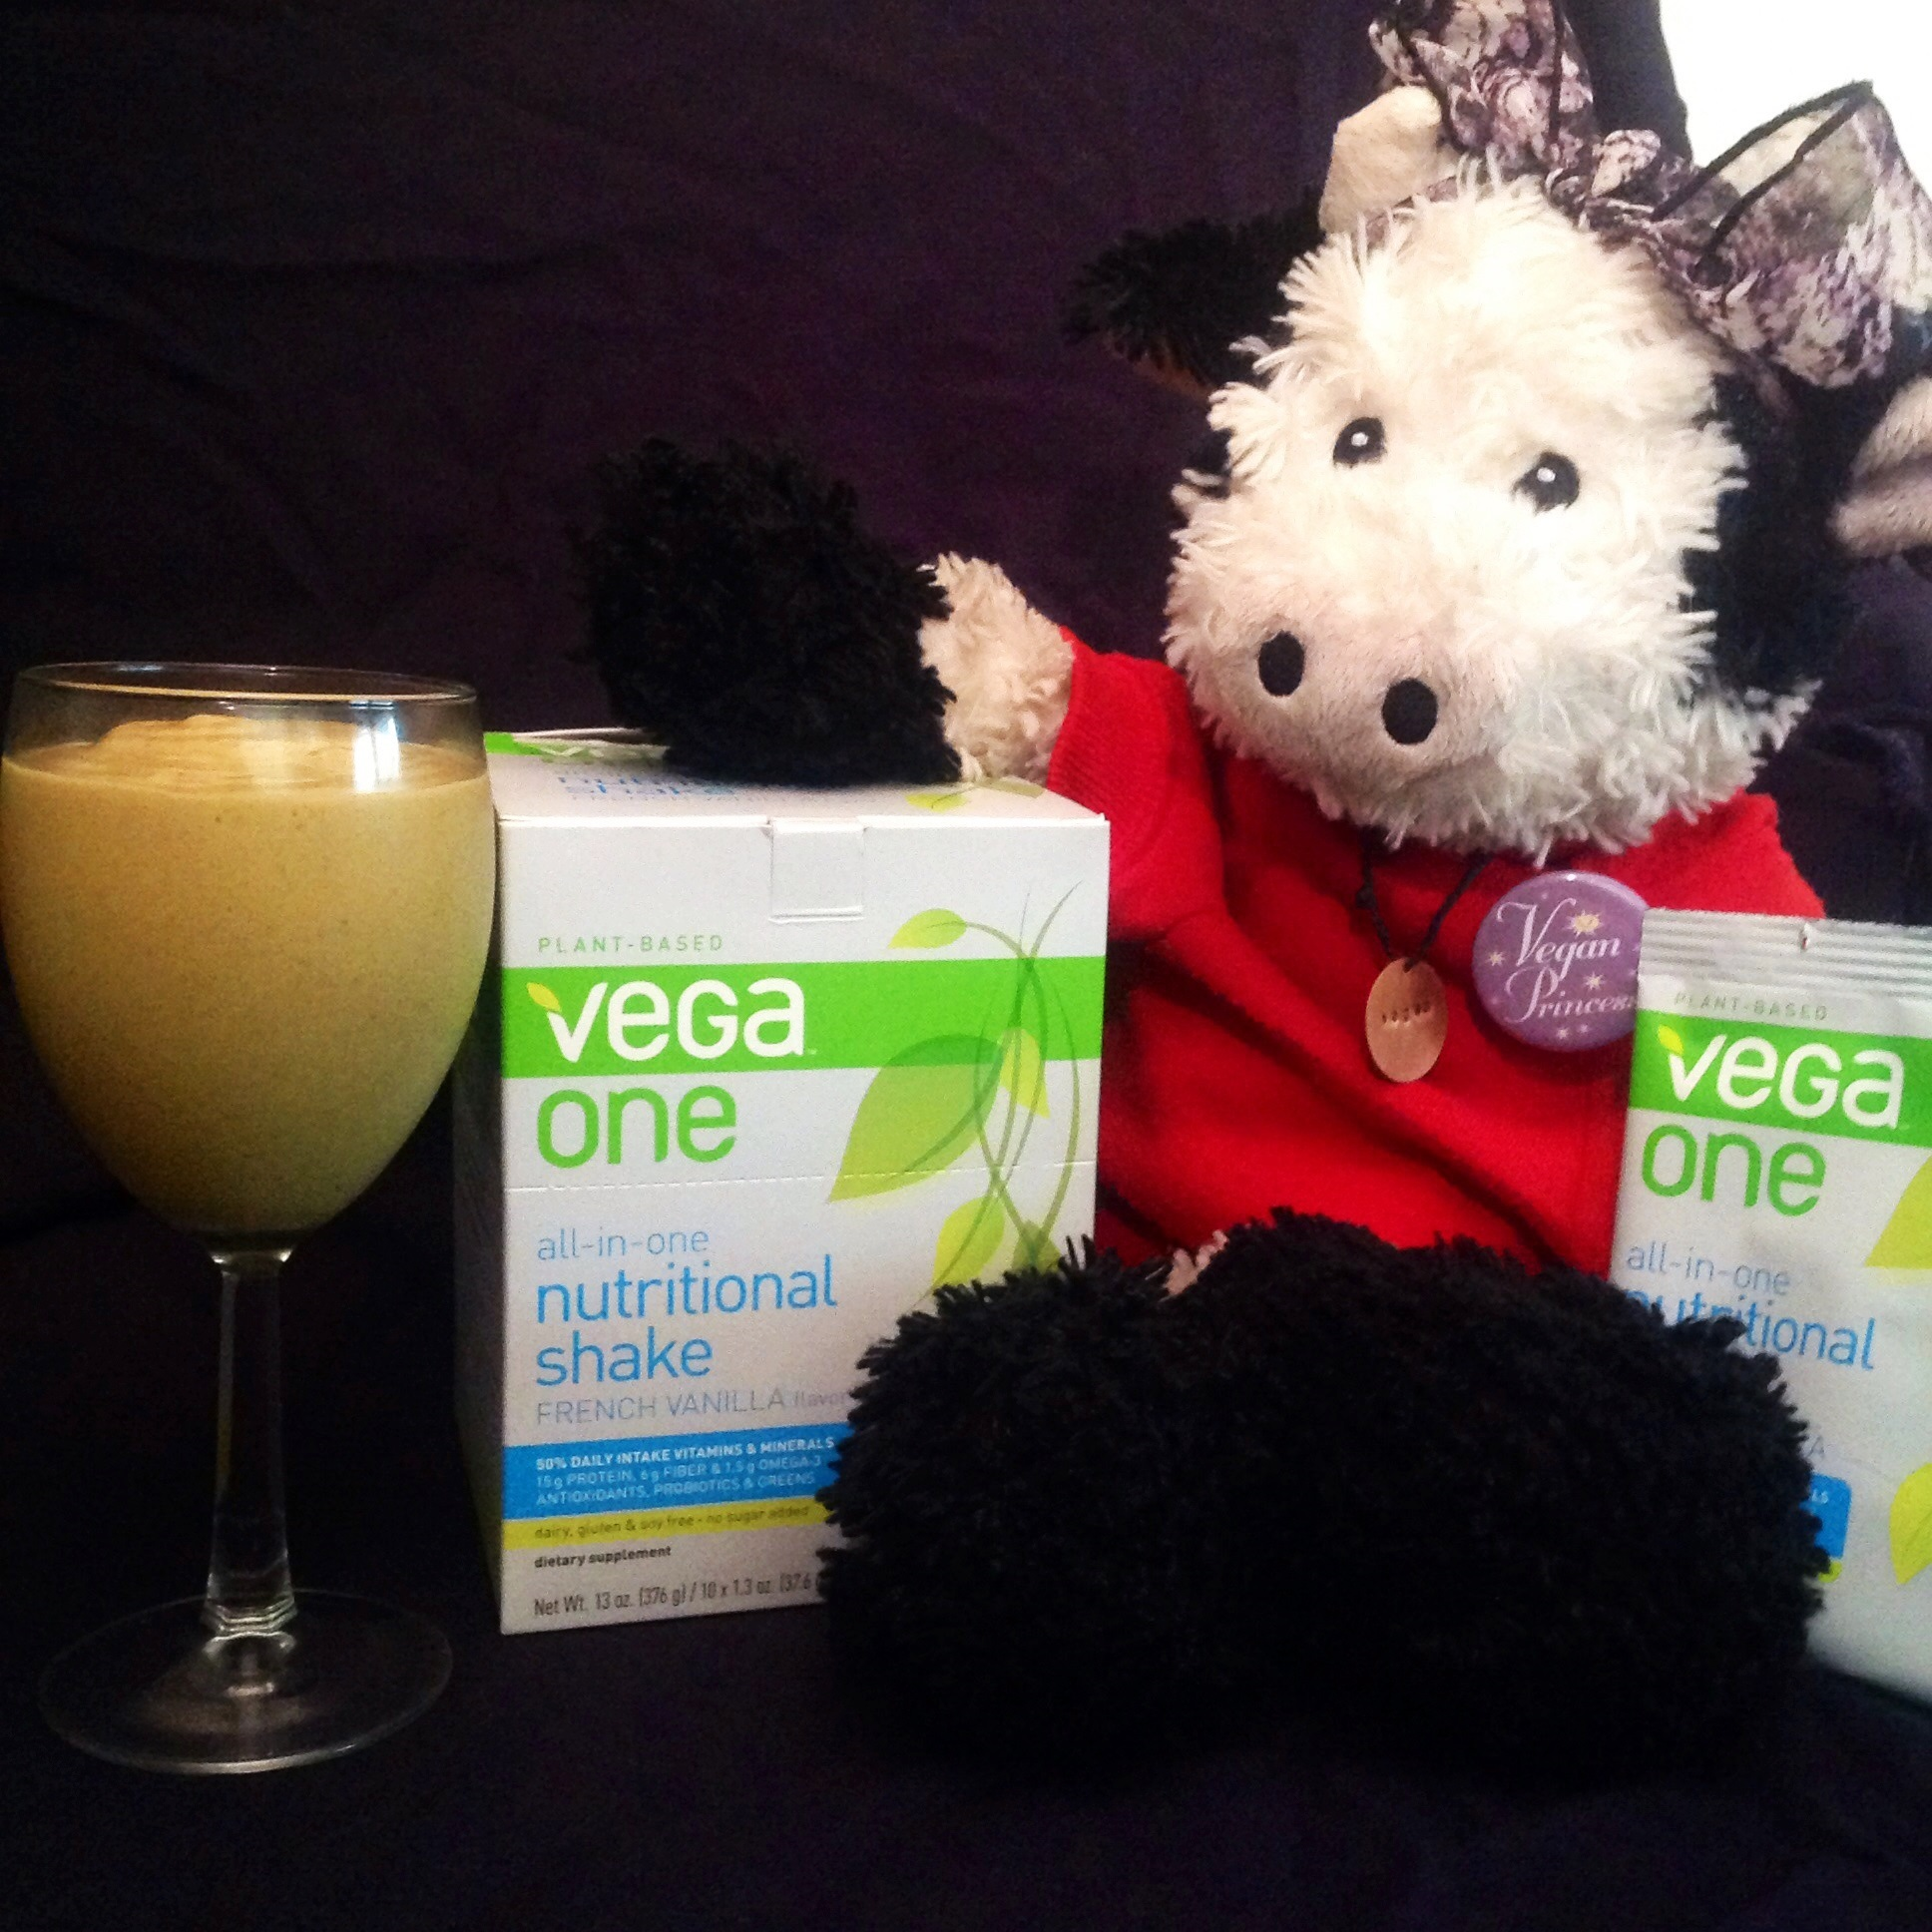 Vega One Pumpkin Pie Smoothie (10)